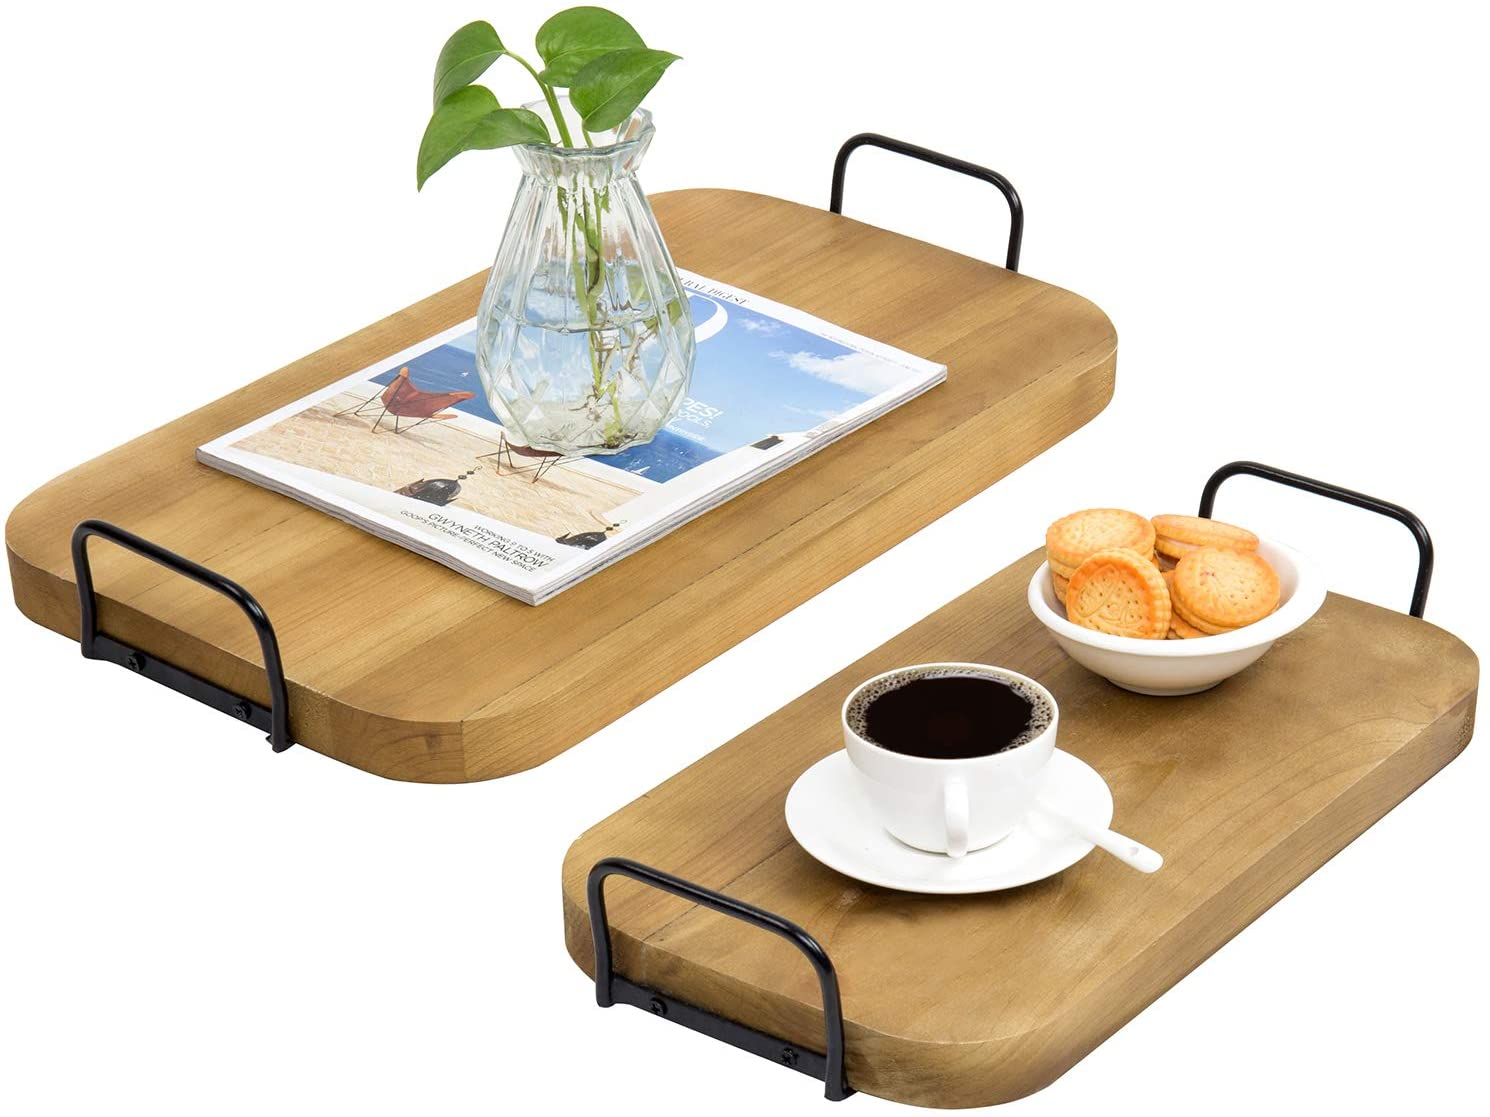 MyGift Vintage Brown Wood Nesting Breakfast Serving Trays with Square Metal Side Handles, Set of 2